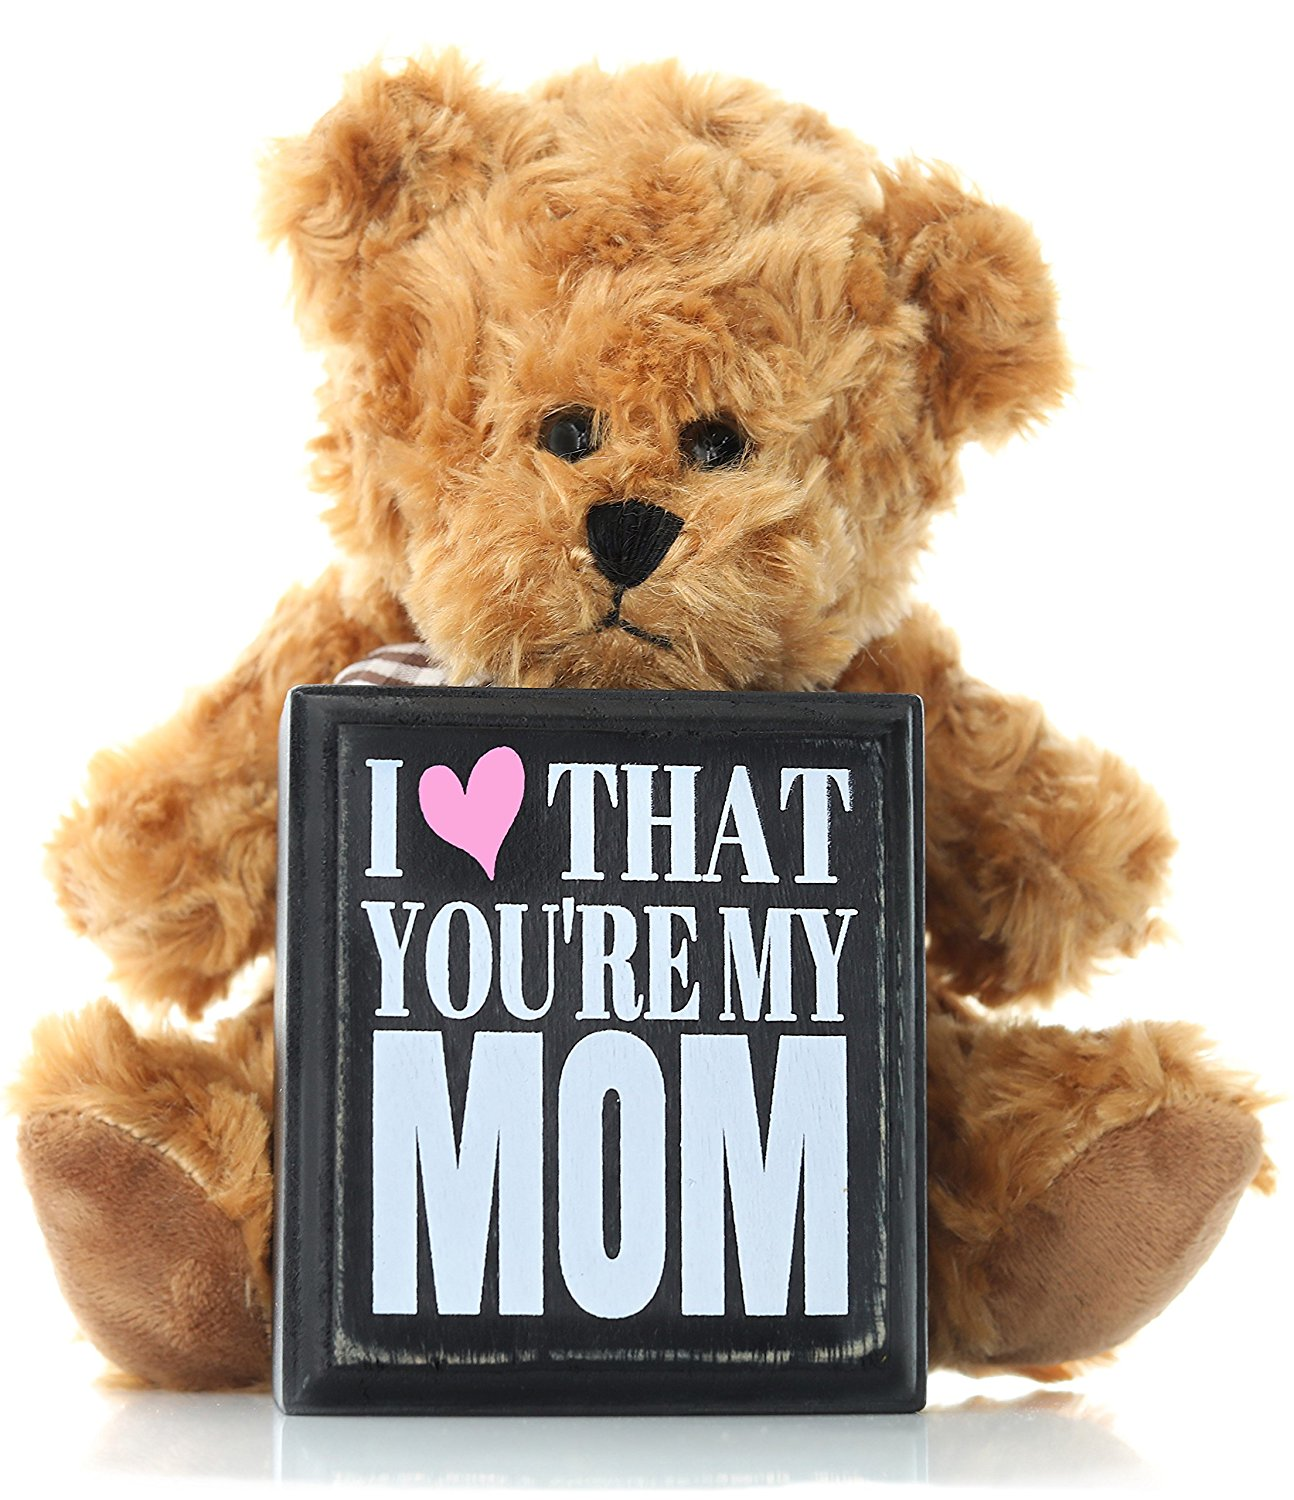 5 Mom Gifts Mother's Day Gift from Daughter Son or Kids for Birthday Christmas Thank You Gift